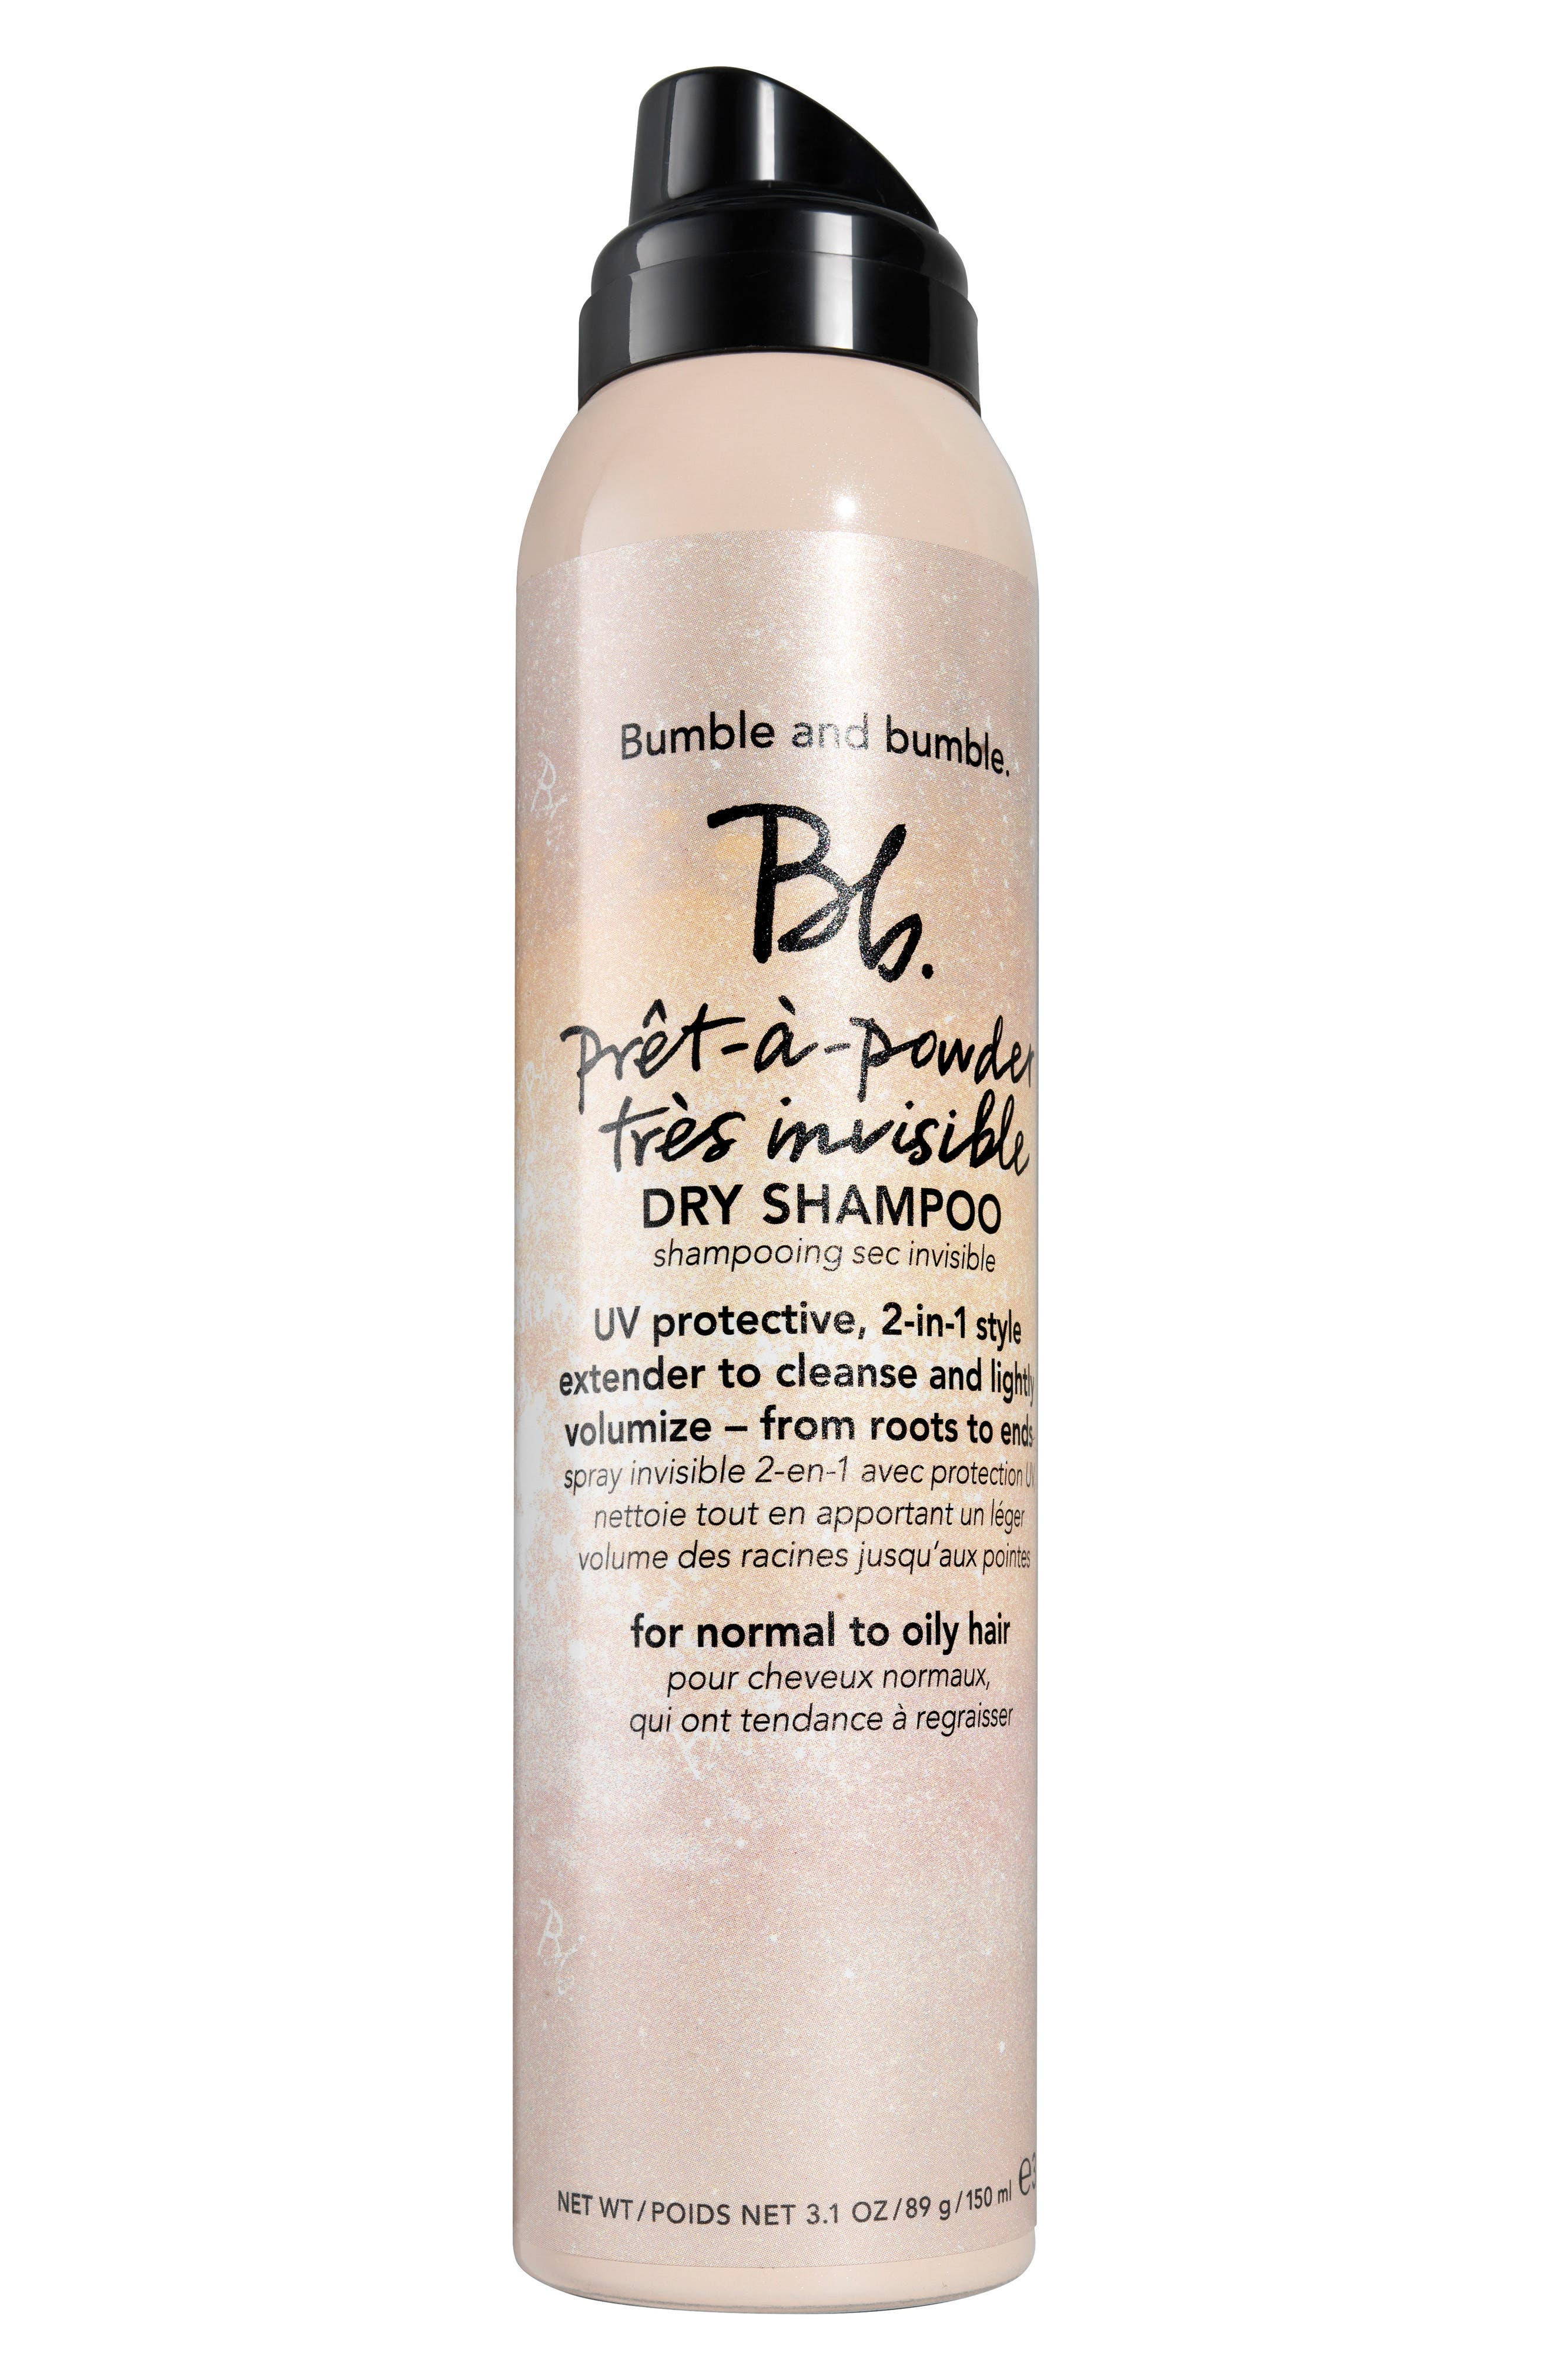 Bumble and bumble Prêt-a-Powder Très Invisible Dry Shampoo